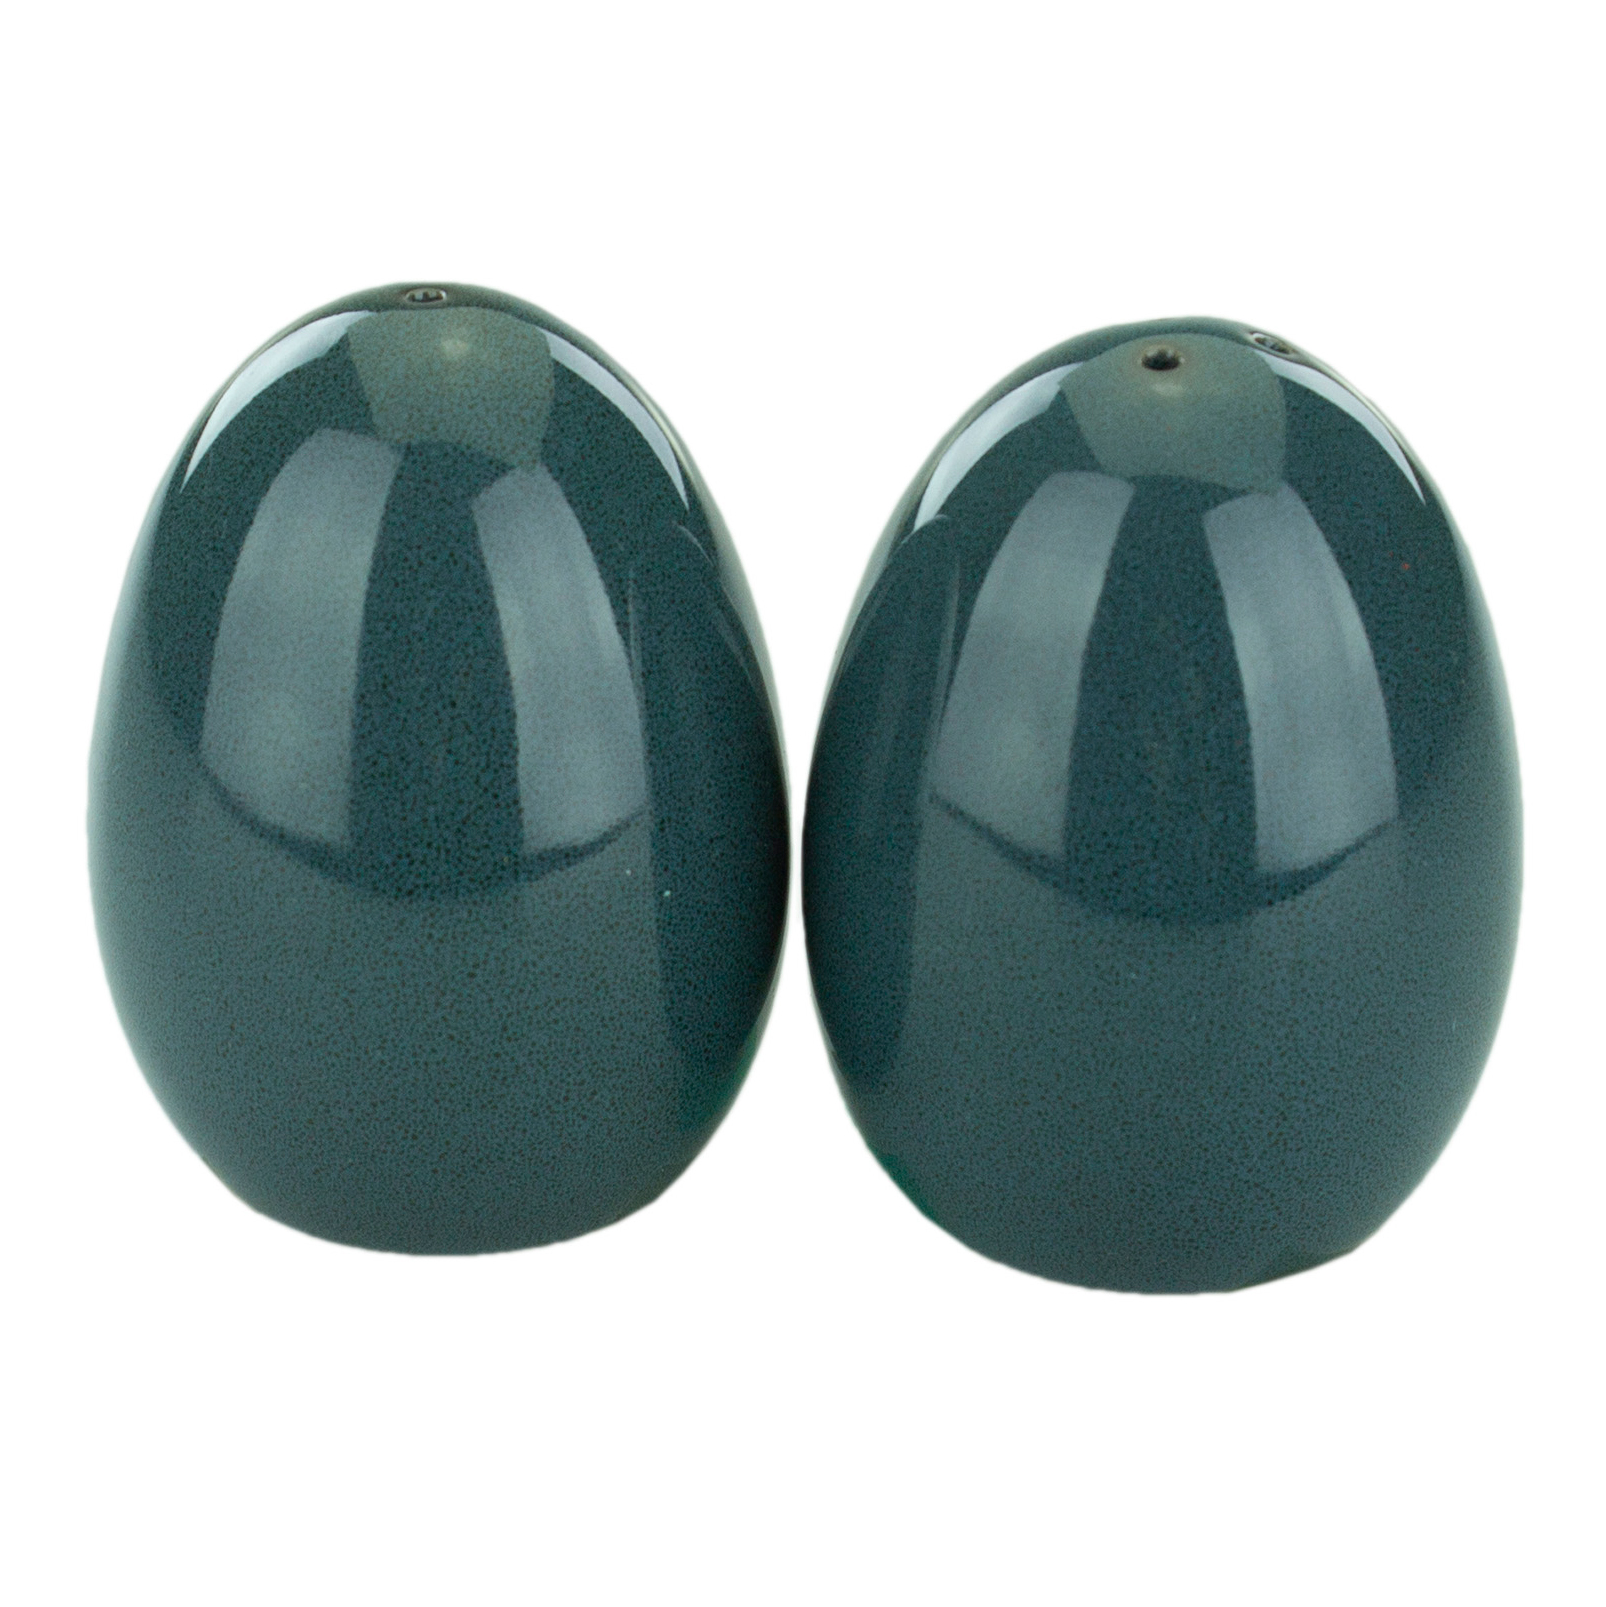 International Tableware LU-101-MI salt / pepper shaker, china